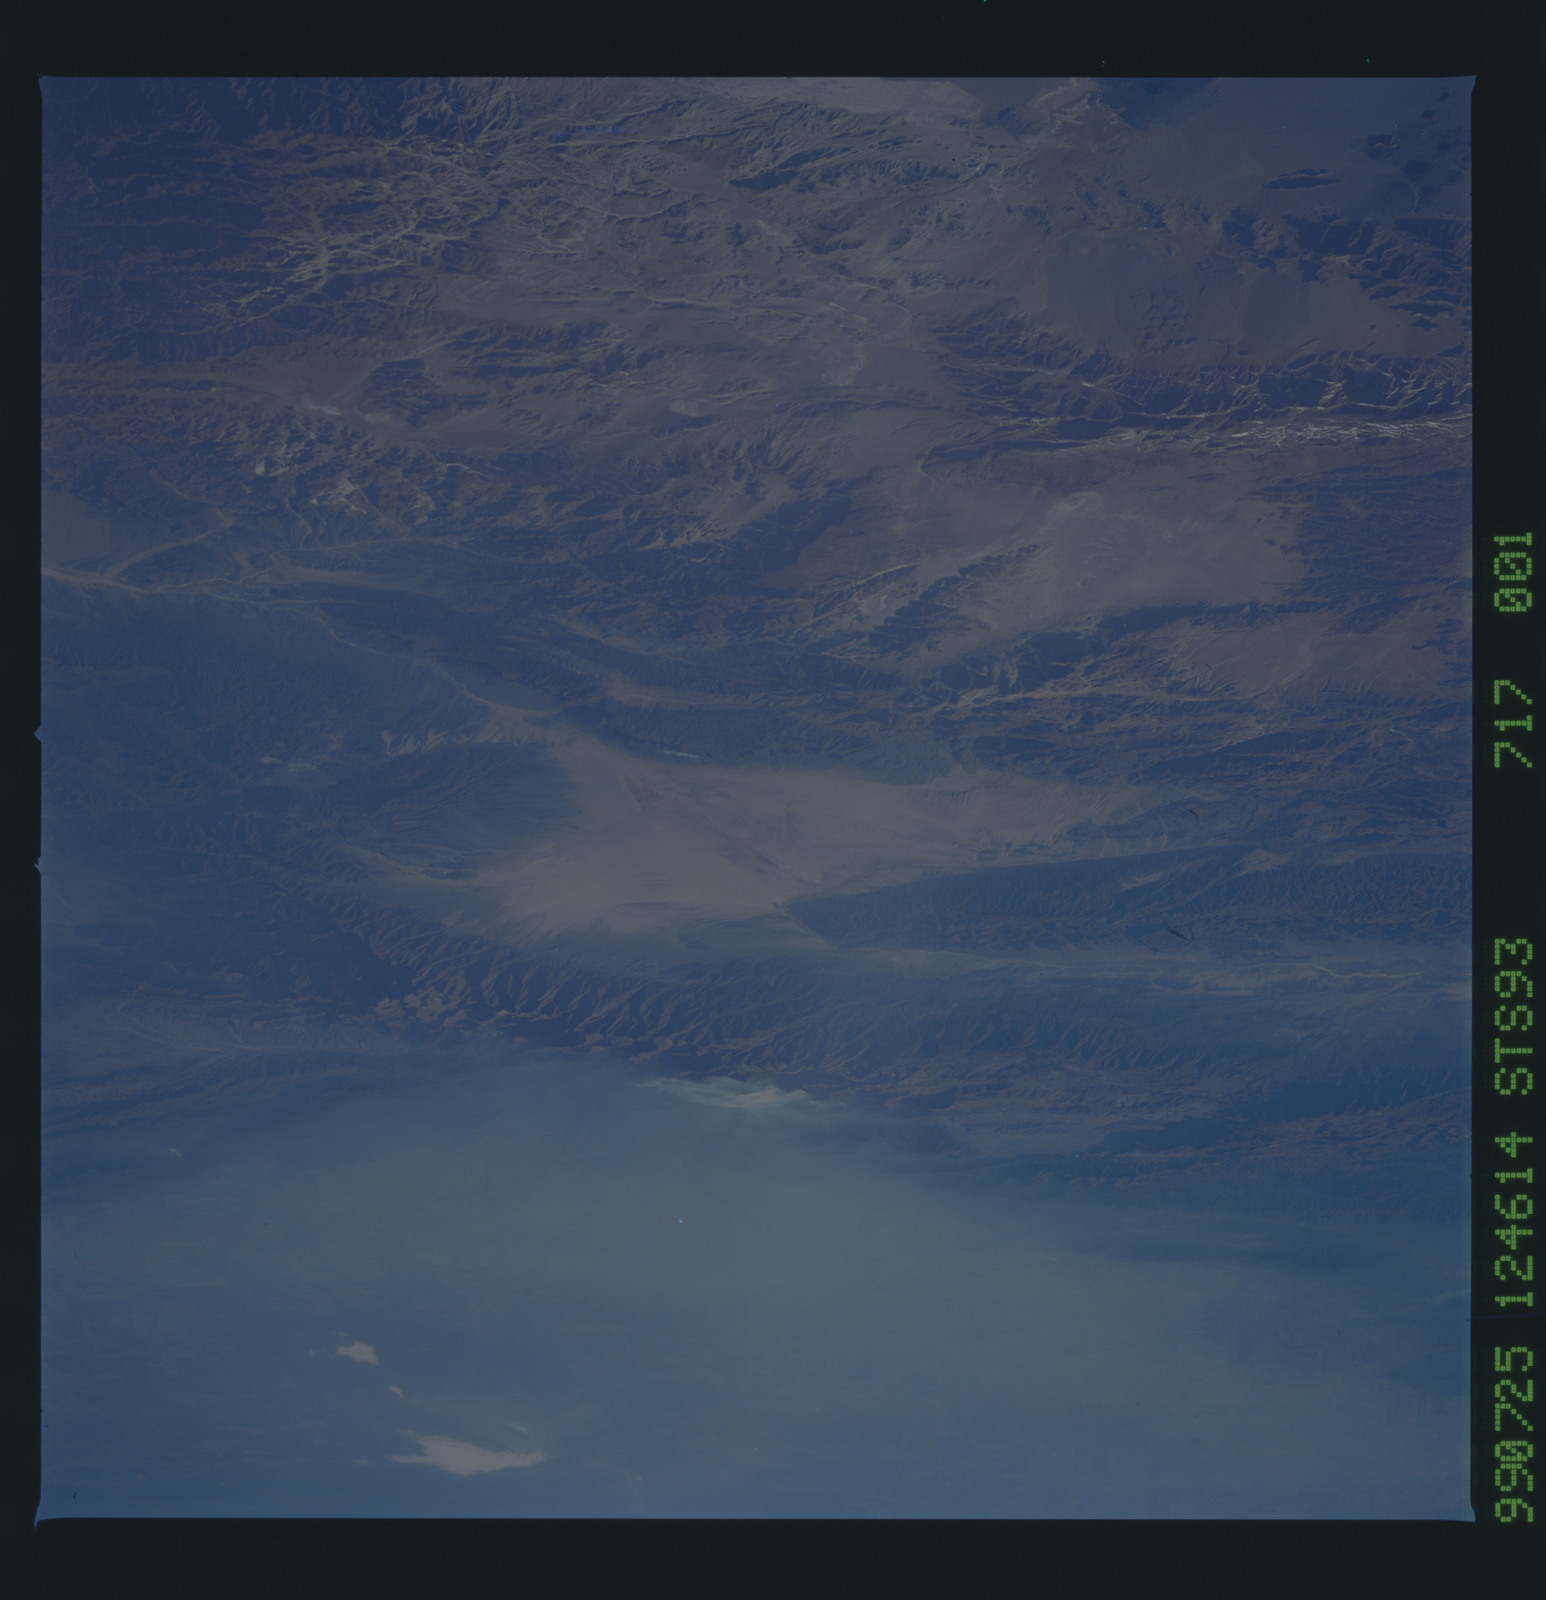 STS093-717-001 - STS-093 - Earth observations of the Andes Mts. taken from Columbia during STS-93 mission